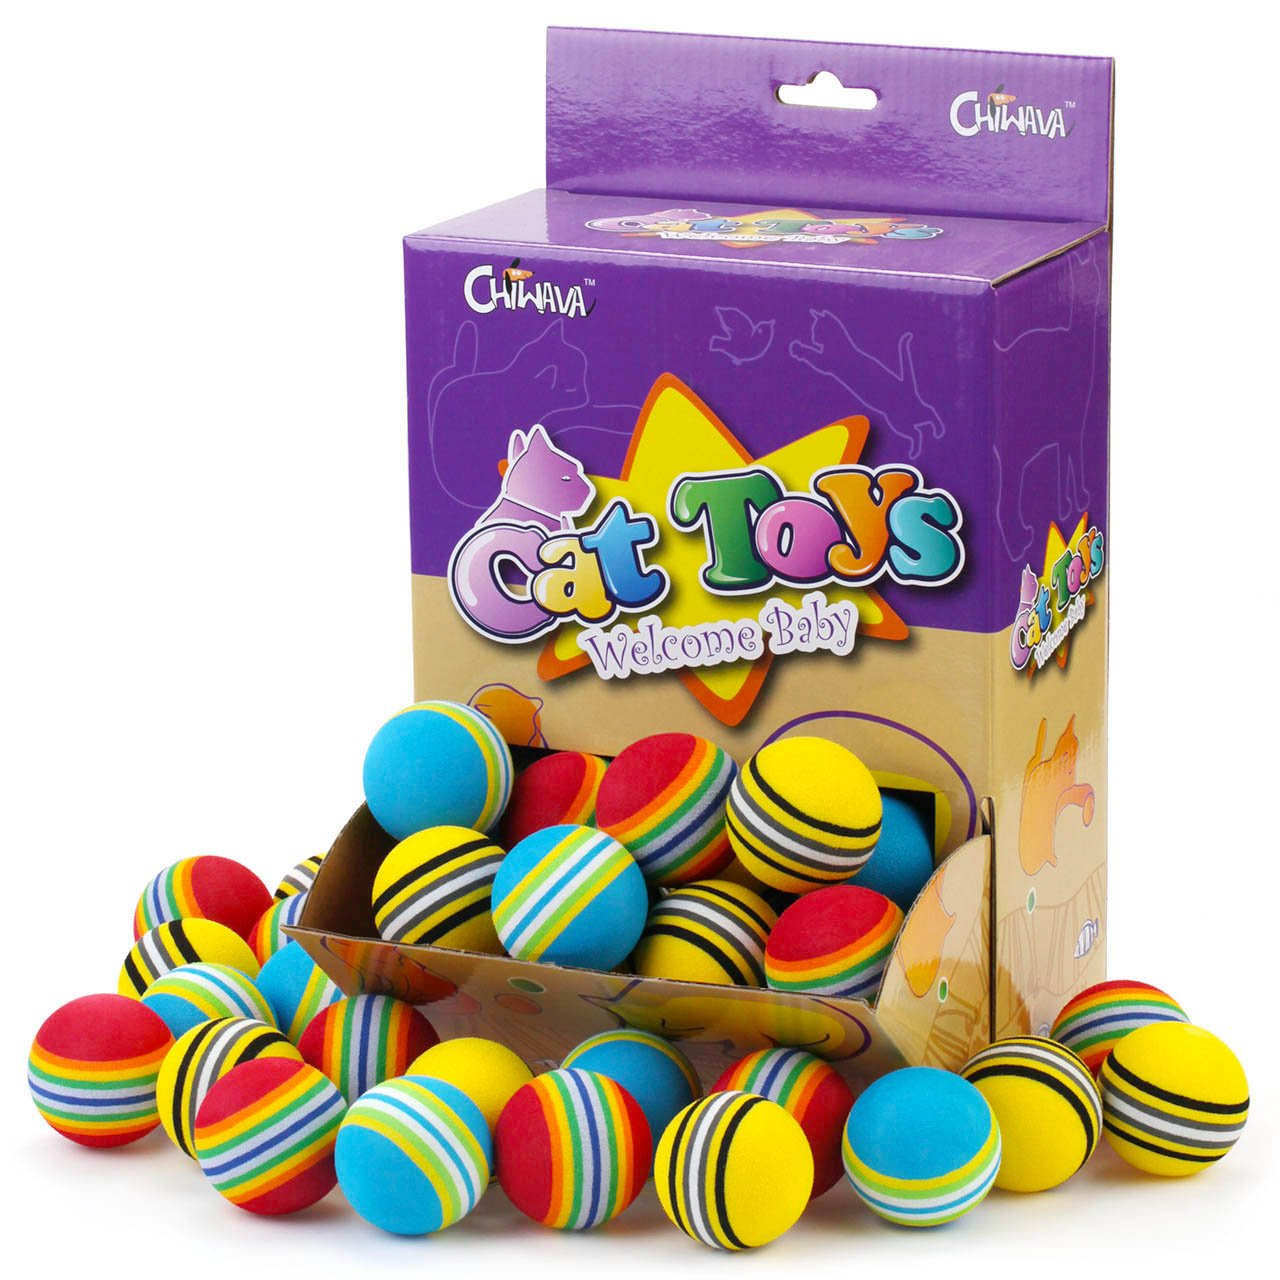 Chiwava 45PCS 1.7'' Slightly Soft Foam Cat Toys Ball Rainbow Color Balls Kitten Activity Chase Play Mix Color